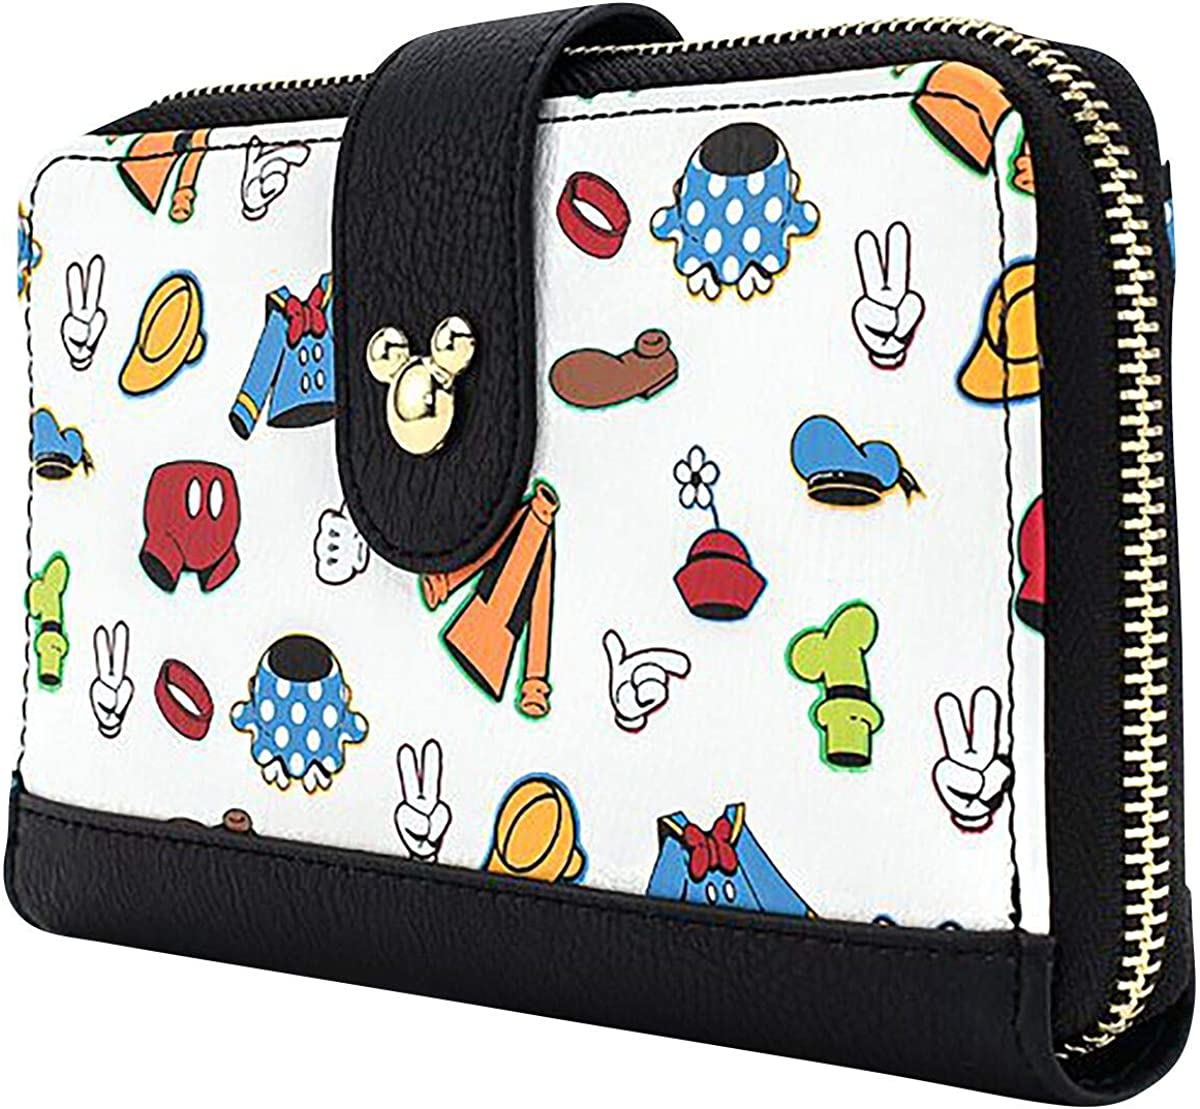 Loungefly x Disney Sensational 6 Outfits AOP Wallet